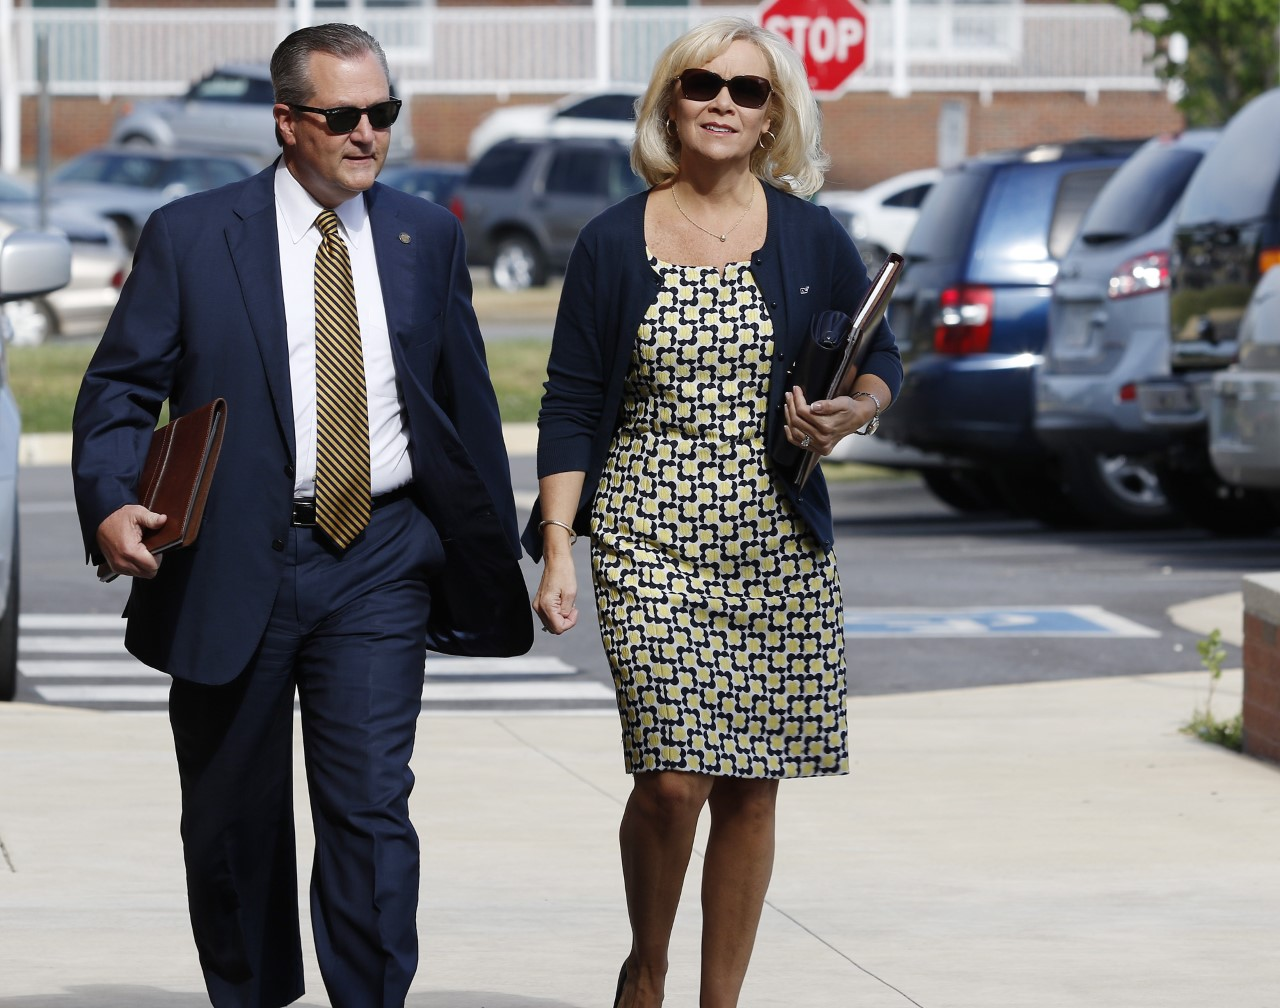 Mike Hubbard and Wife Walk into Court_206136